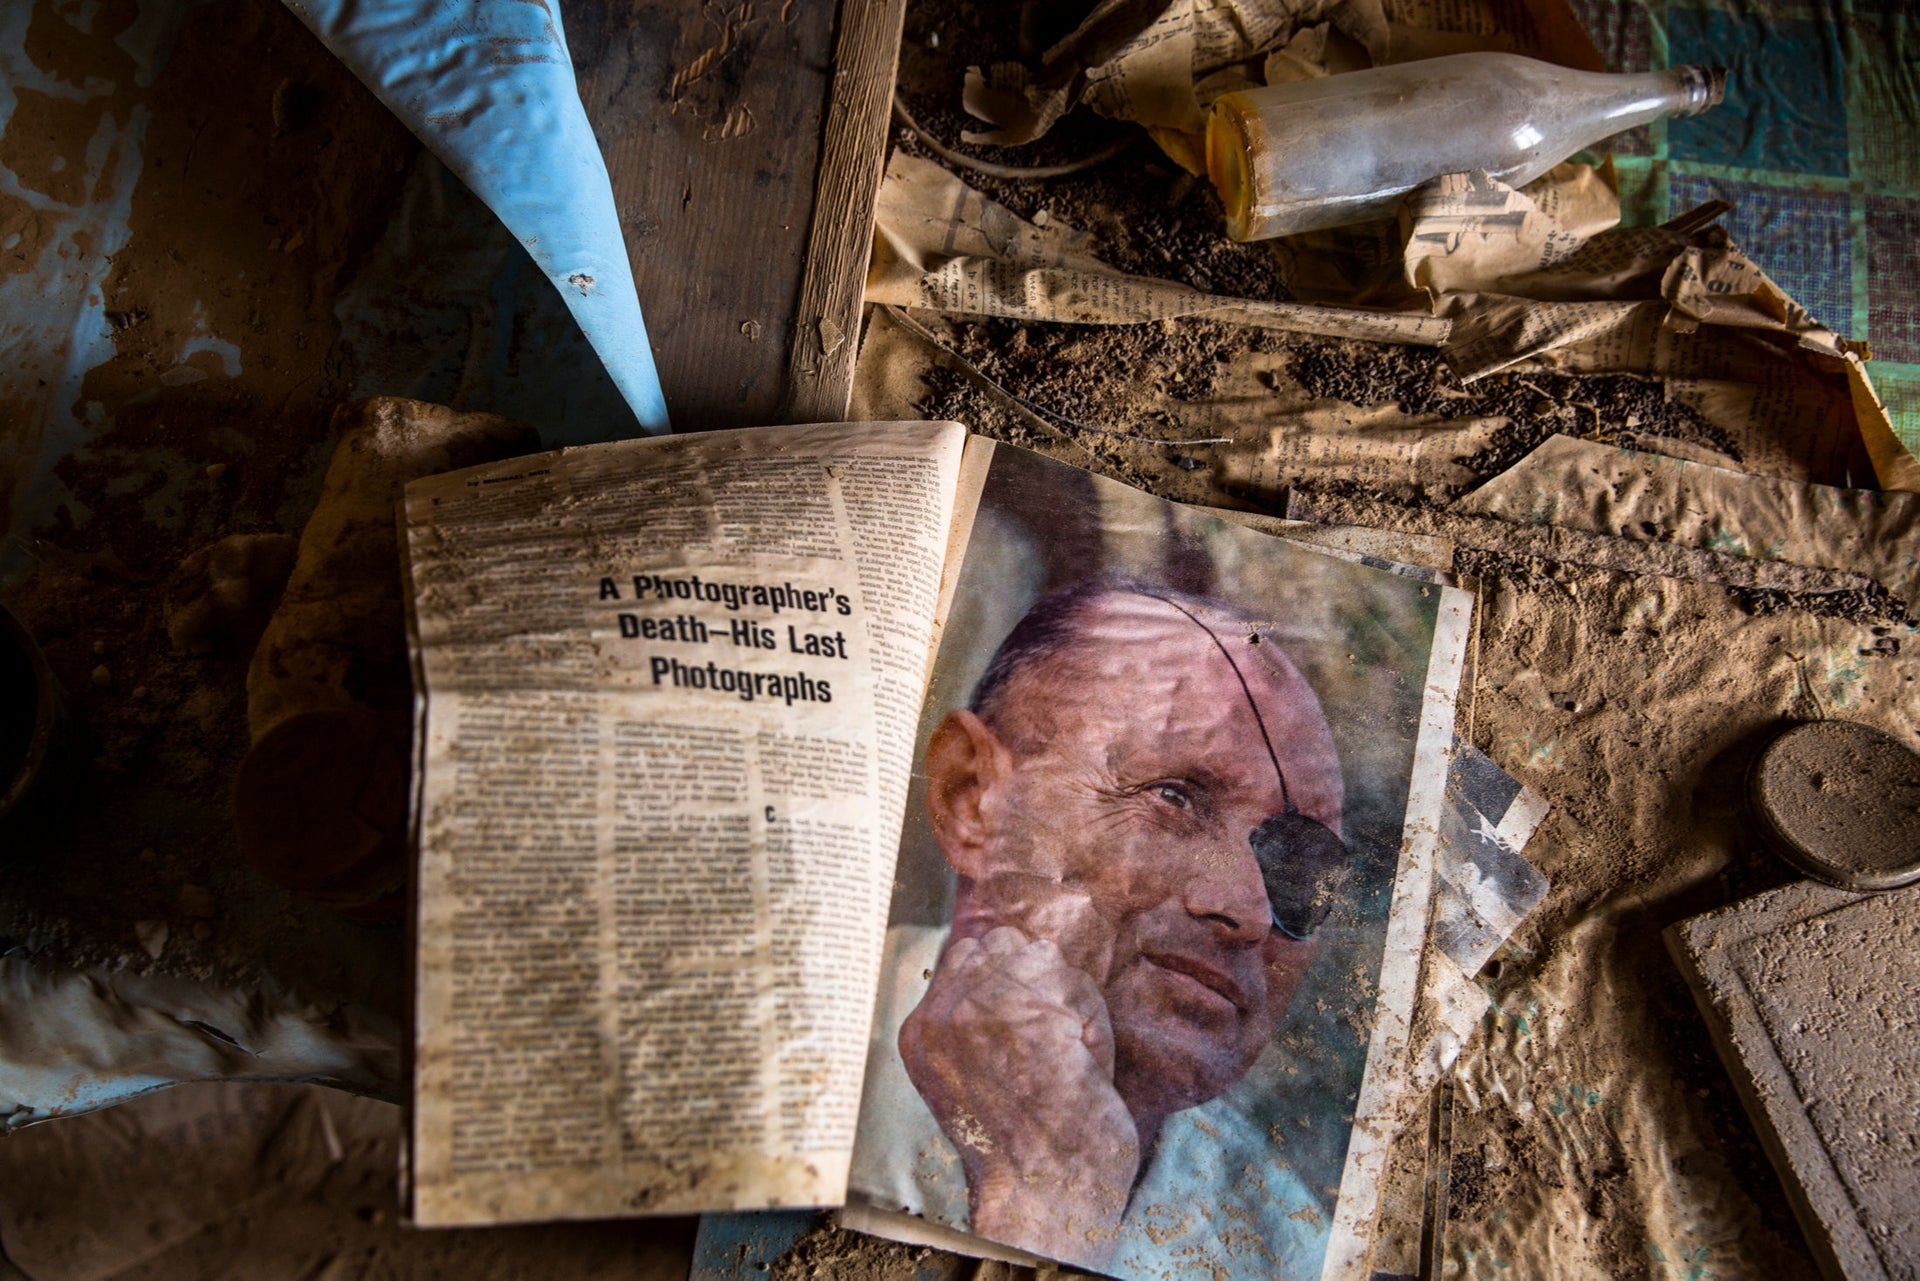 A book inside a deserted church in an area recently cleared of mines and unexploded ordnance in a project to clear the area near Qasr Al-Yahud, a traditional baptism site along the Jordan River, near Jericho in the occupied West Bank, December 9, 2018.